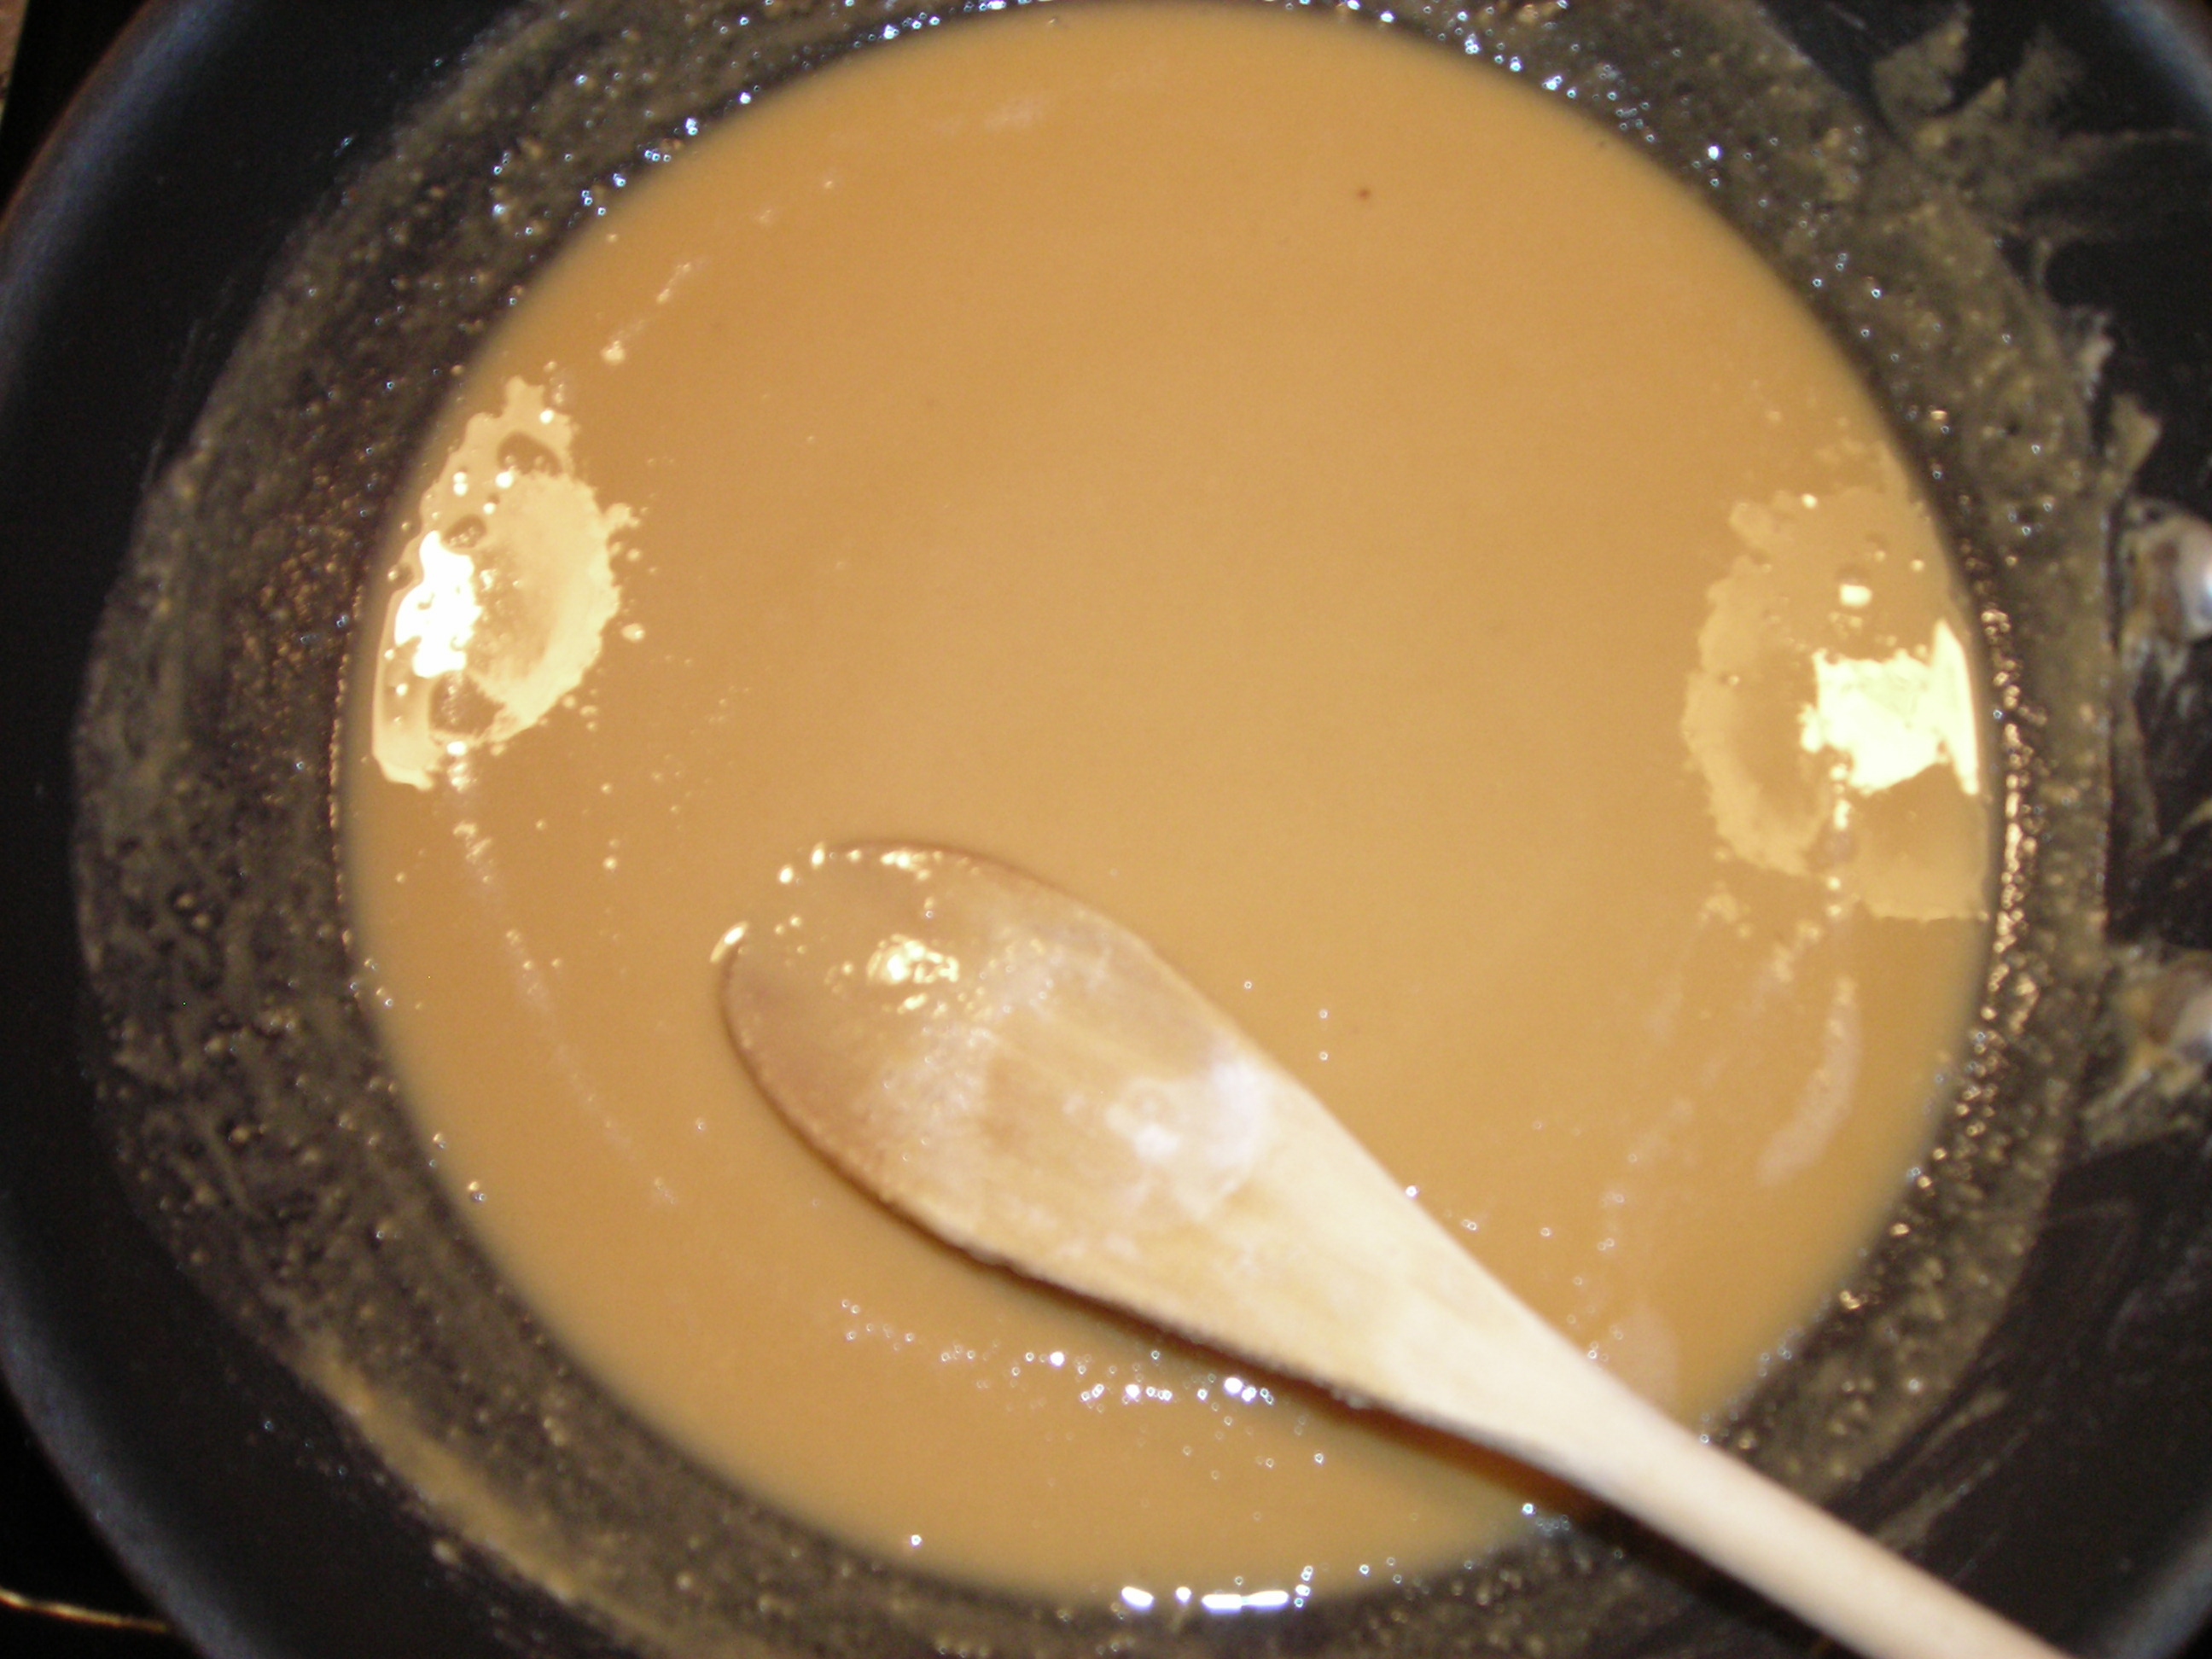 Roux is a rich brown and smells like baked piecrust